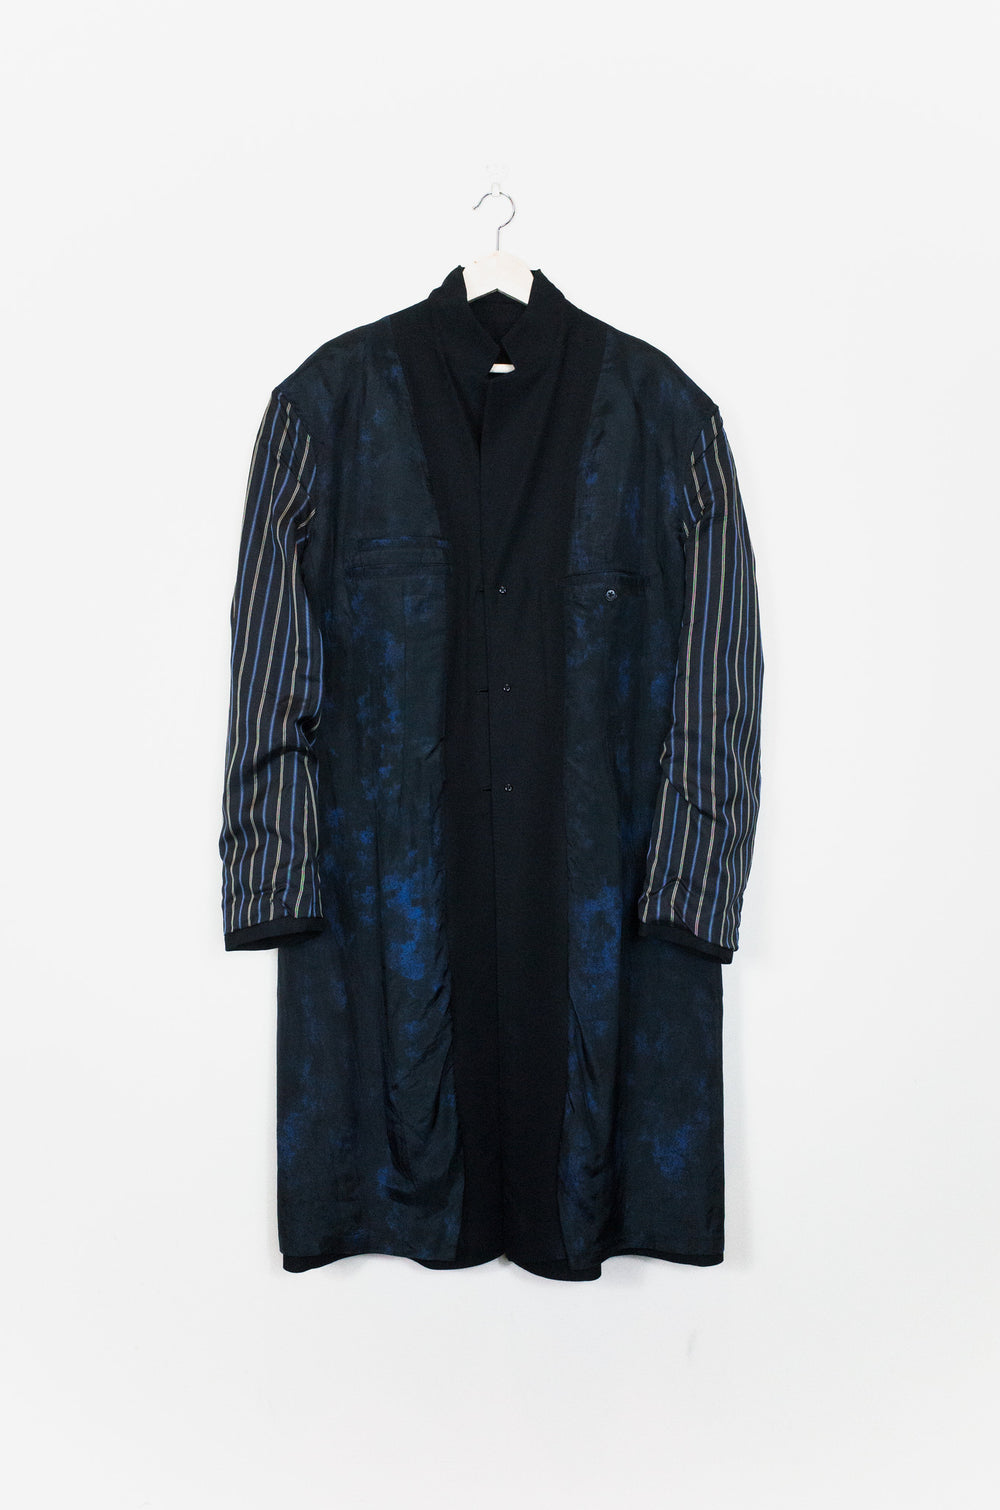 Yohji Yamamoto Pour Homme AW09 Cerberus Lining Chester